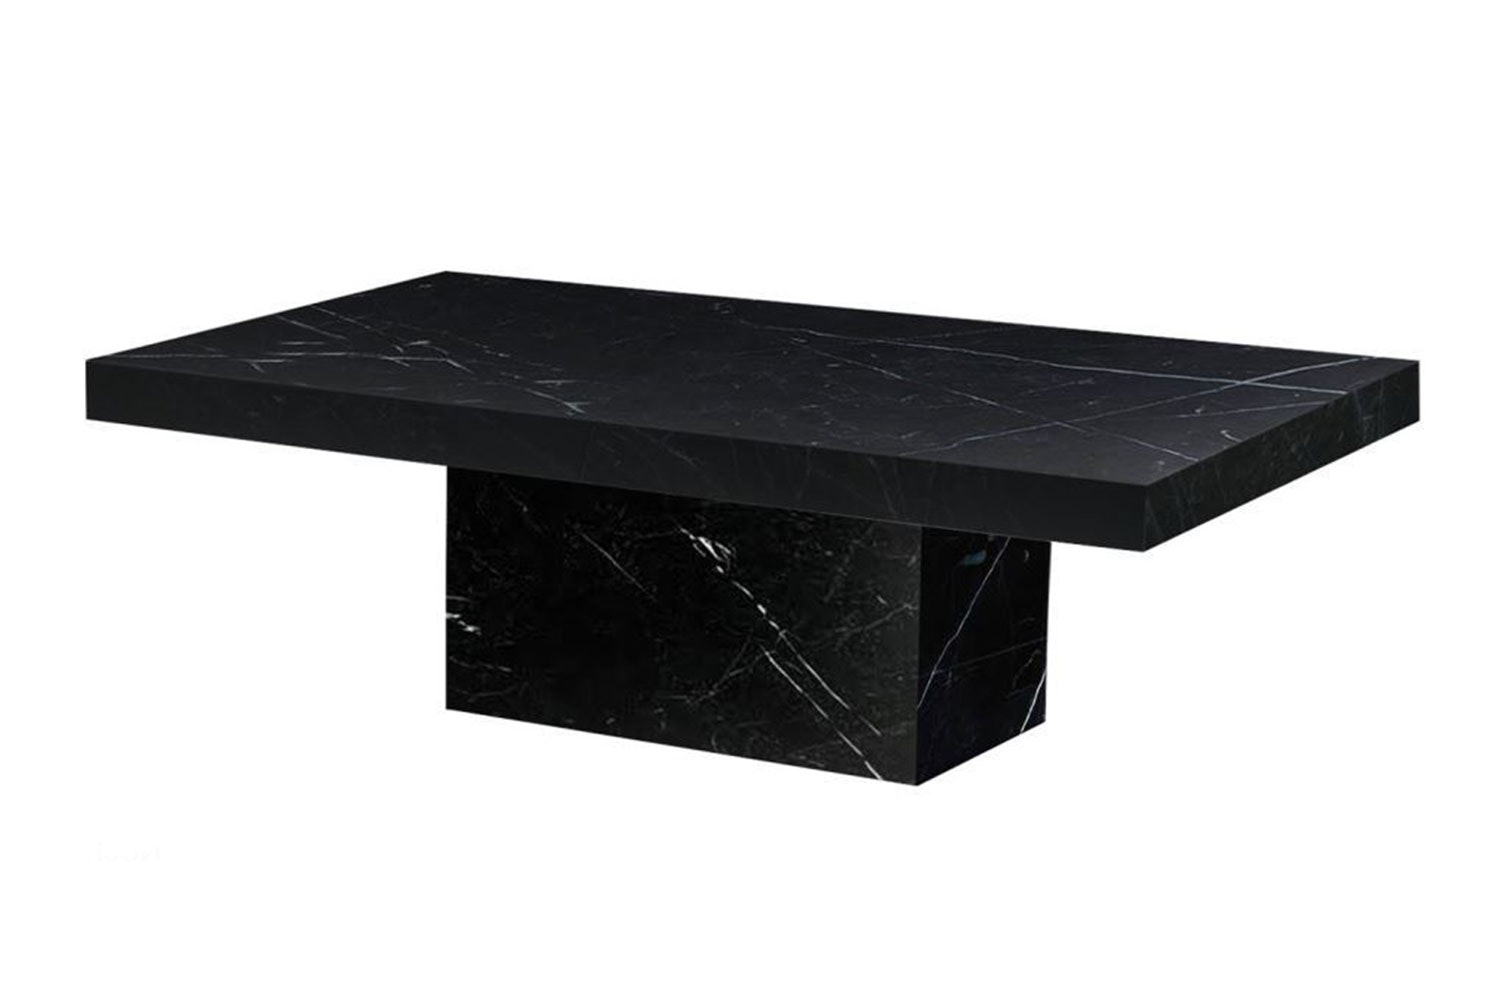 Noche2 Coffee Table by Collage